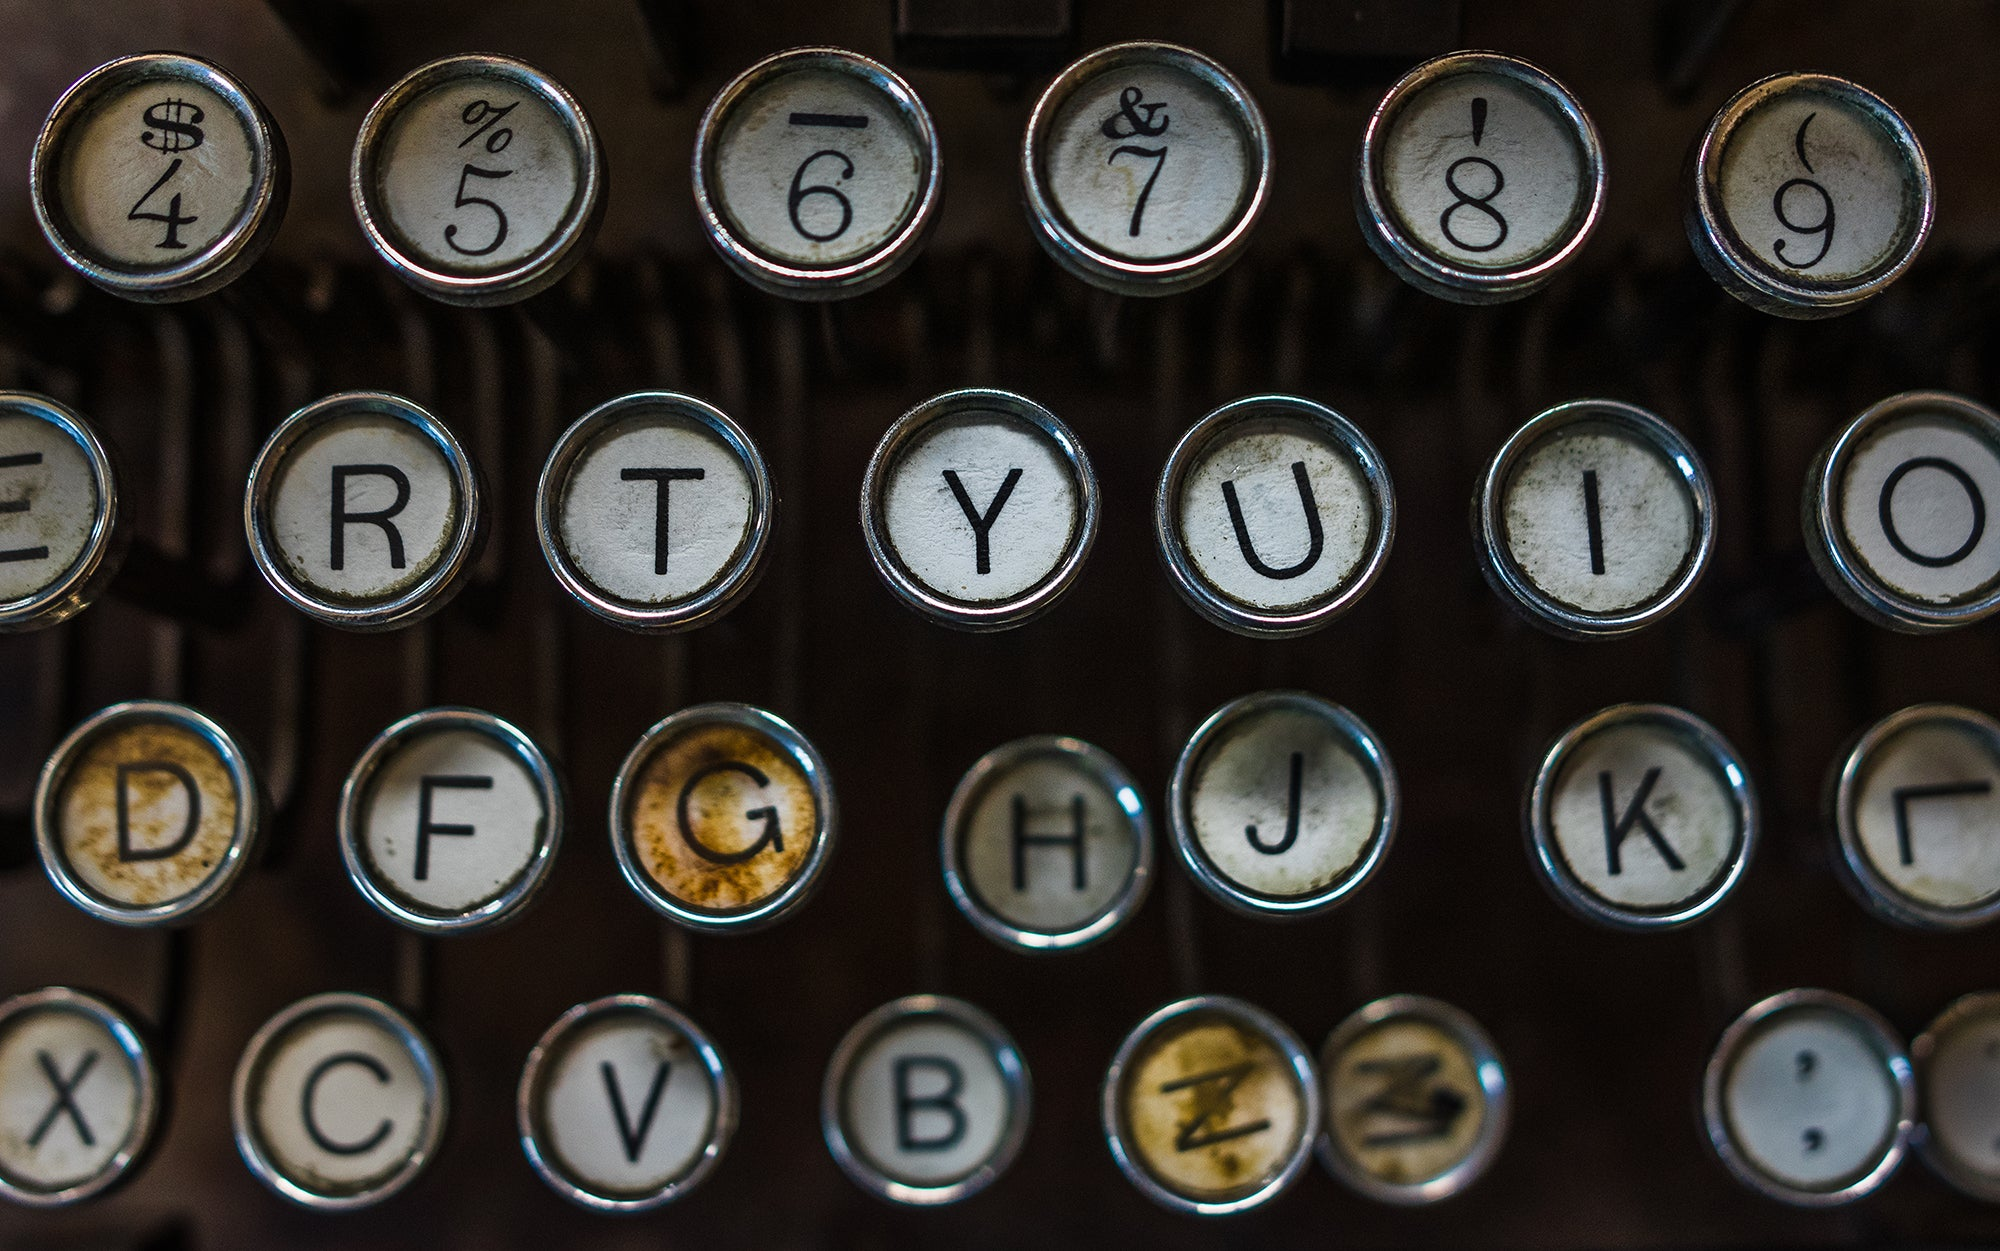 Vintage Typewriter Keys Modern Wall Art Print